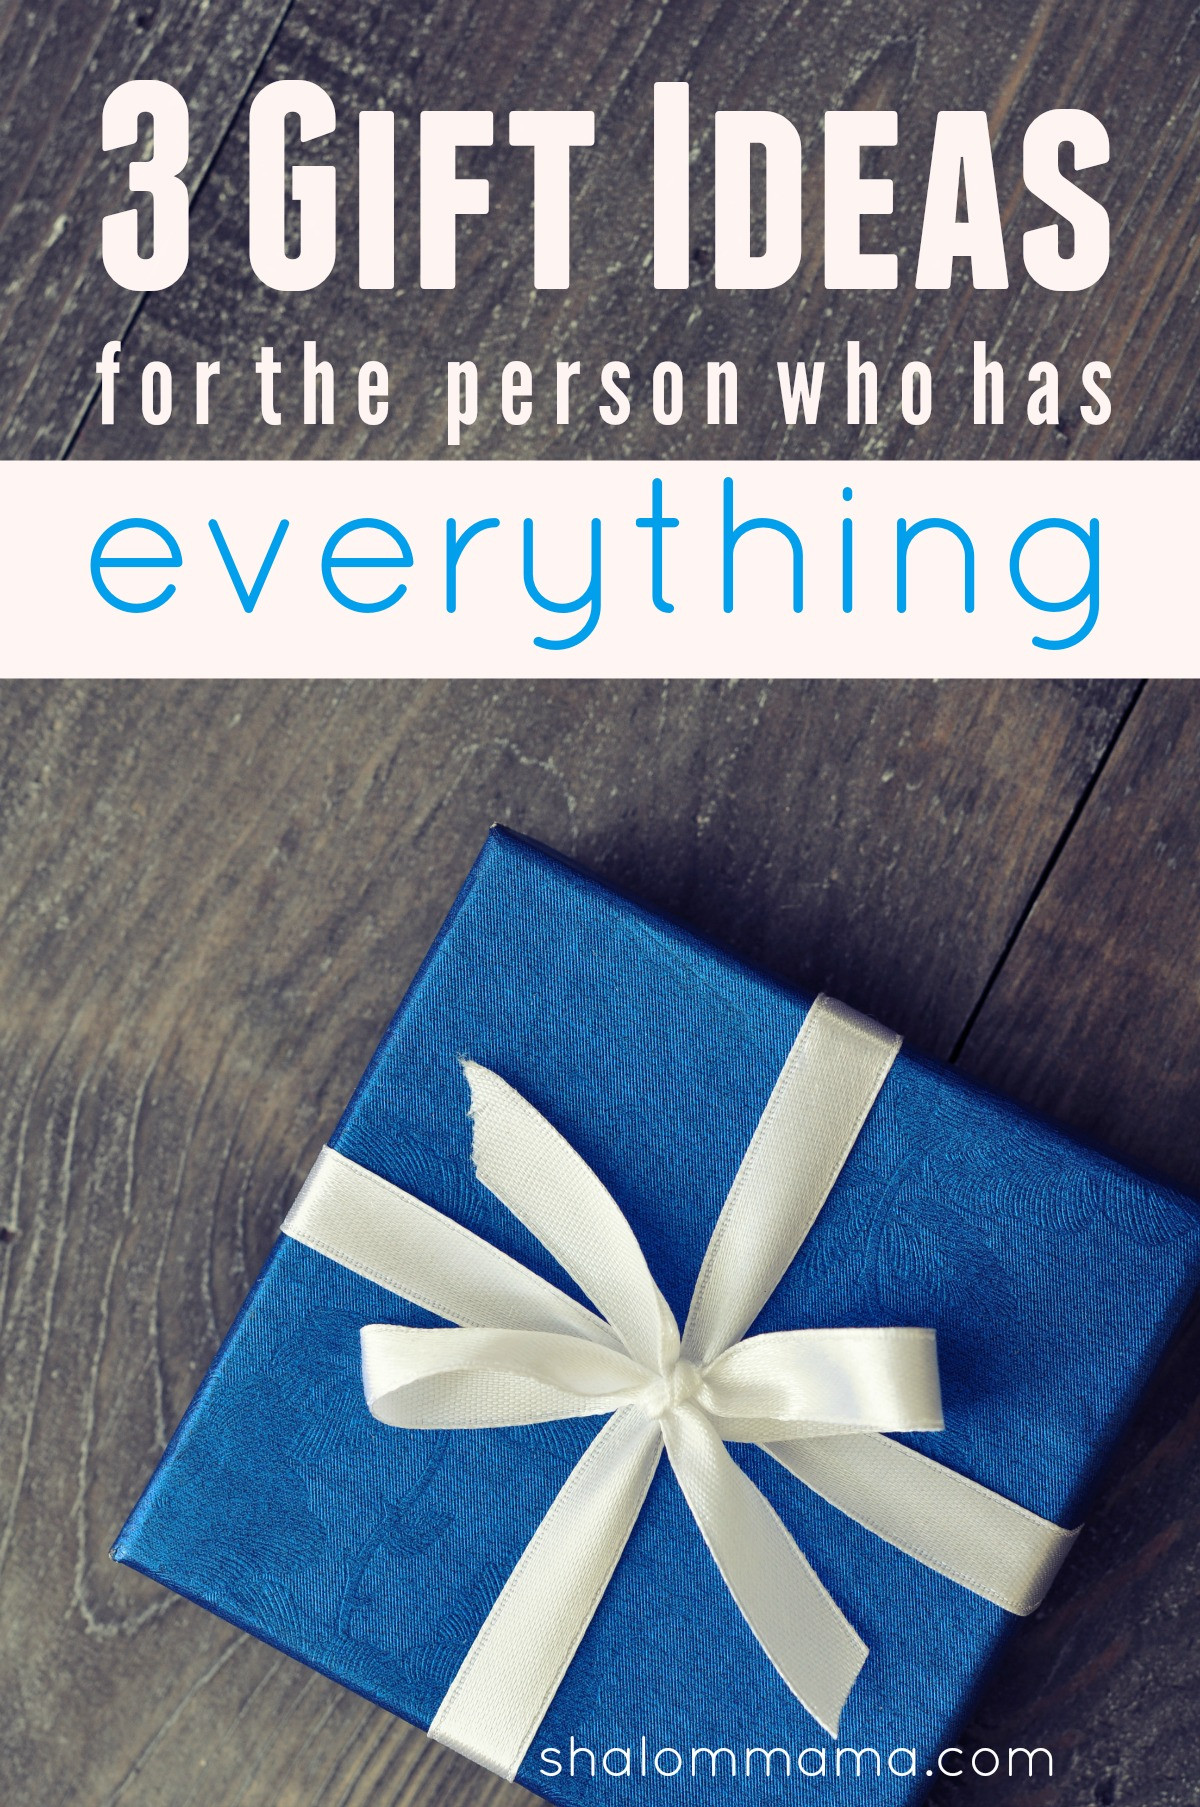 Best ideas about Gift Ideas For Man Who Has Everything . Save or Pin 3 Gift Ideas for the Person Who has Everything Now.